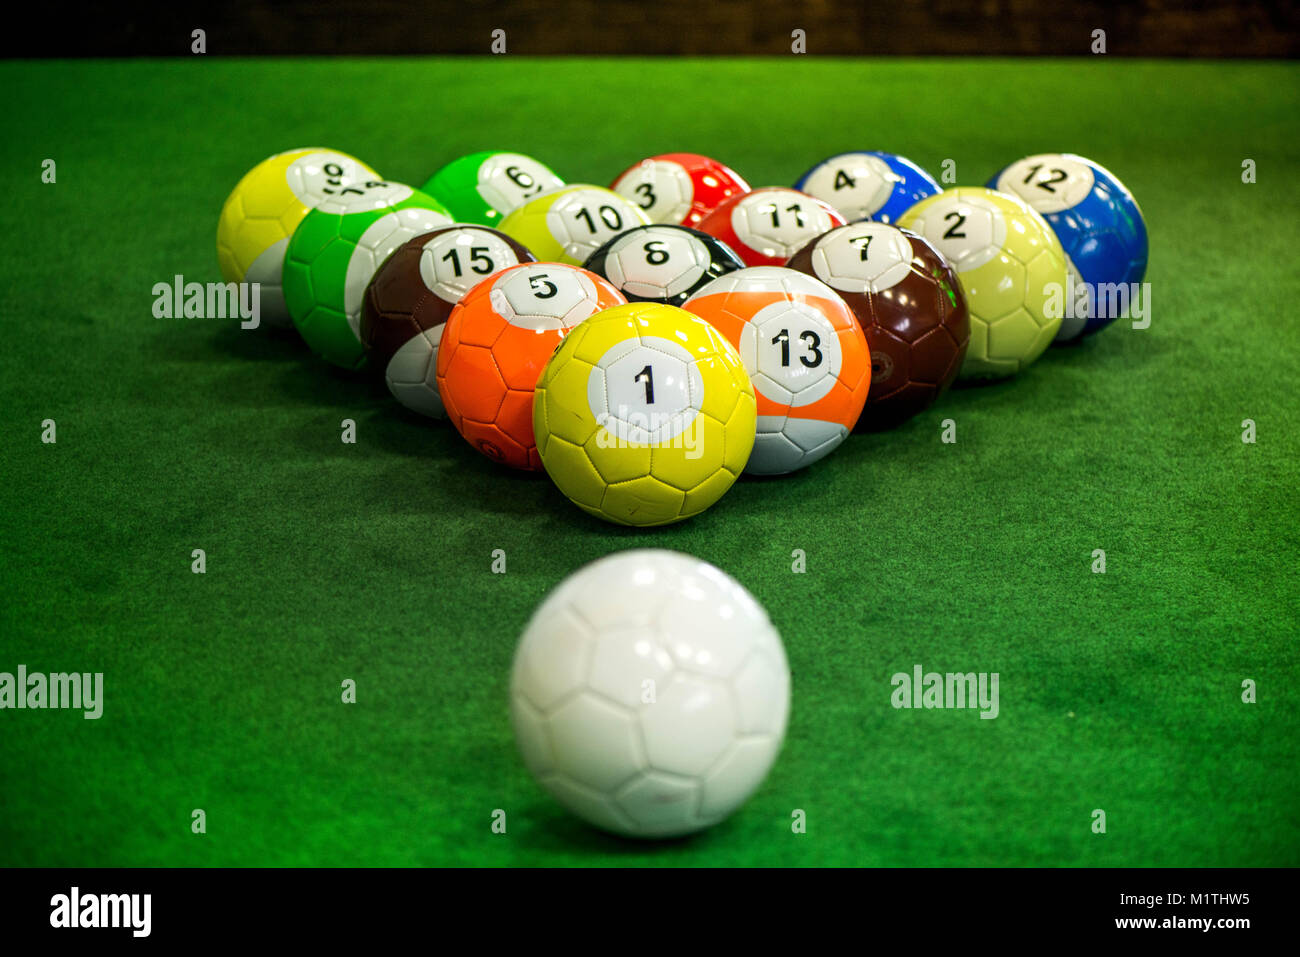 Shot Of Foot Pool Balls Standing On Green Table Foot Pool Is The - Big 5 pool table